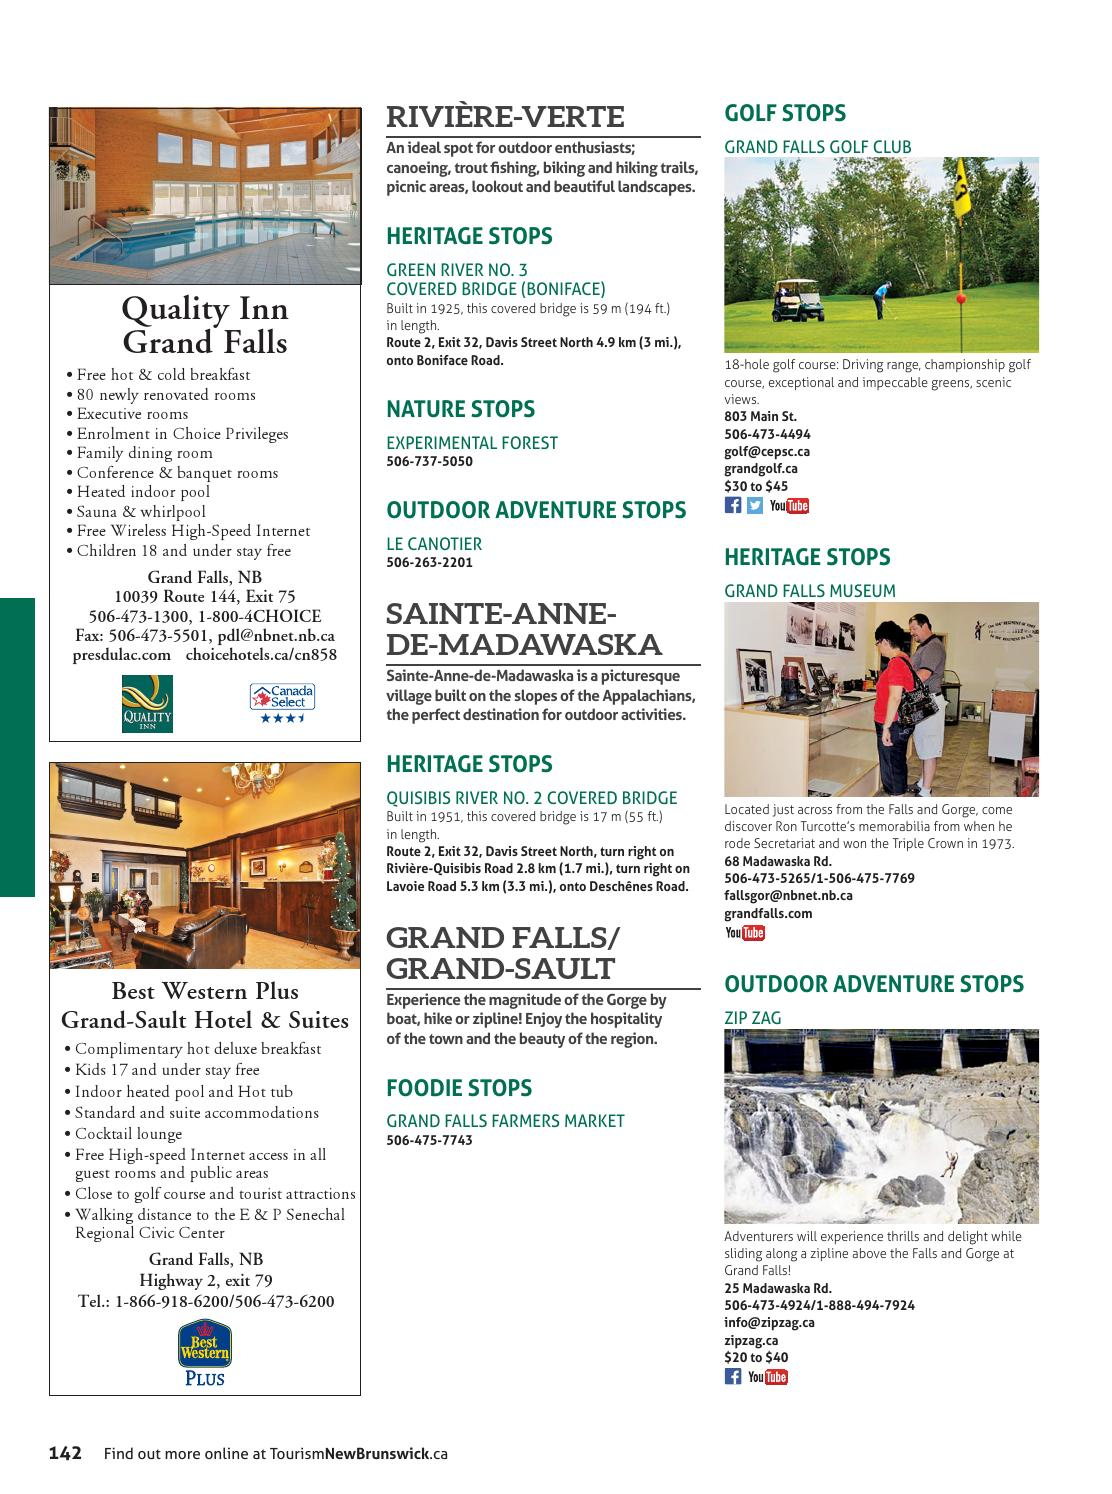 OFFICIAL 2016 NEW BRUNSWICK TRAVEL GUIDE by Official New Brunswick